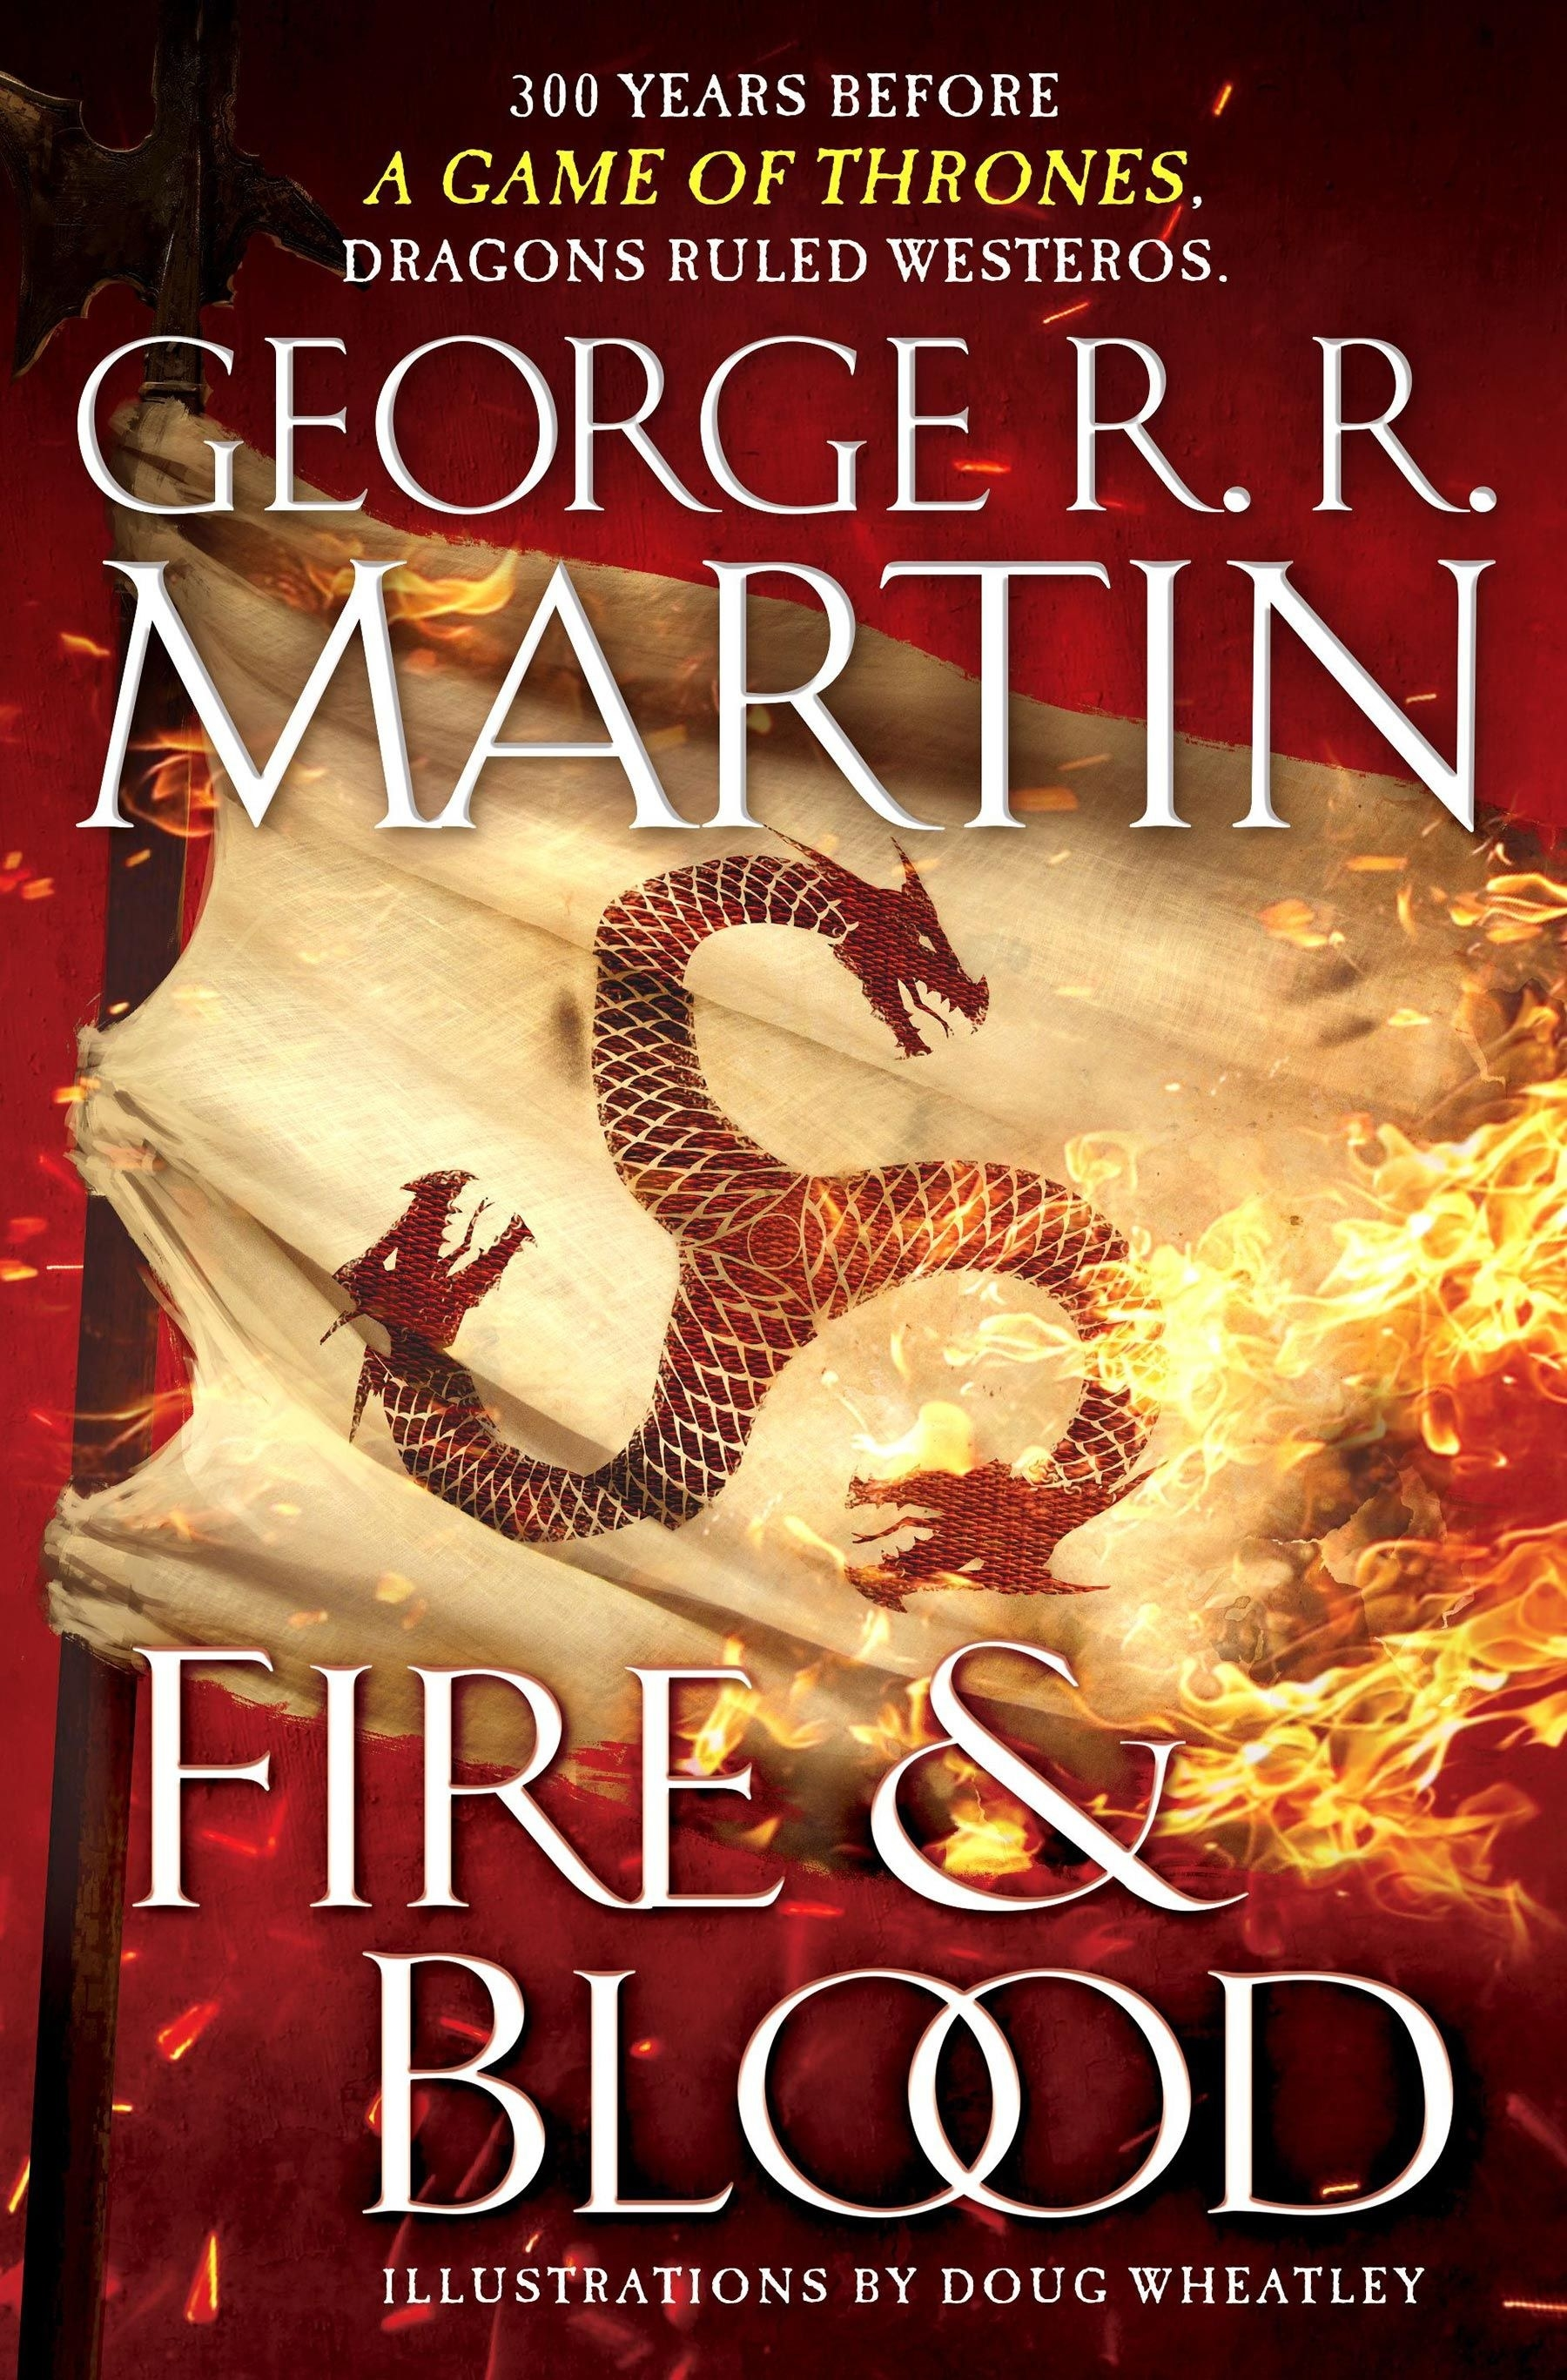 Book cover of Fire & Blood by George R R Martin featuring a burning Targaryen flag